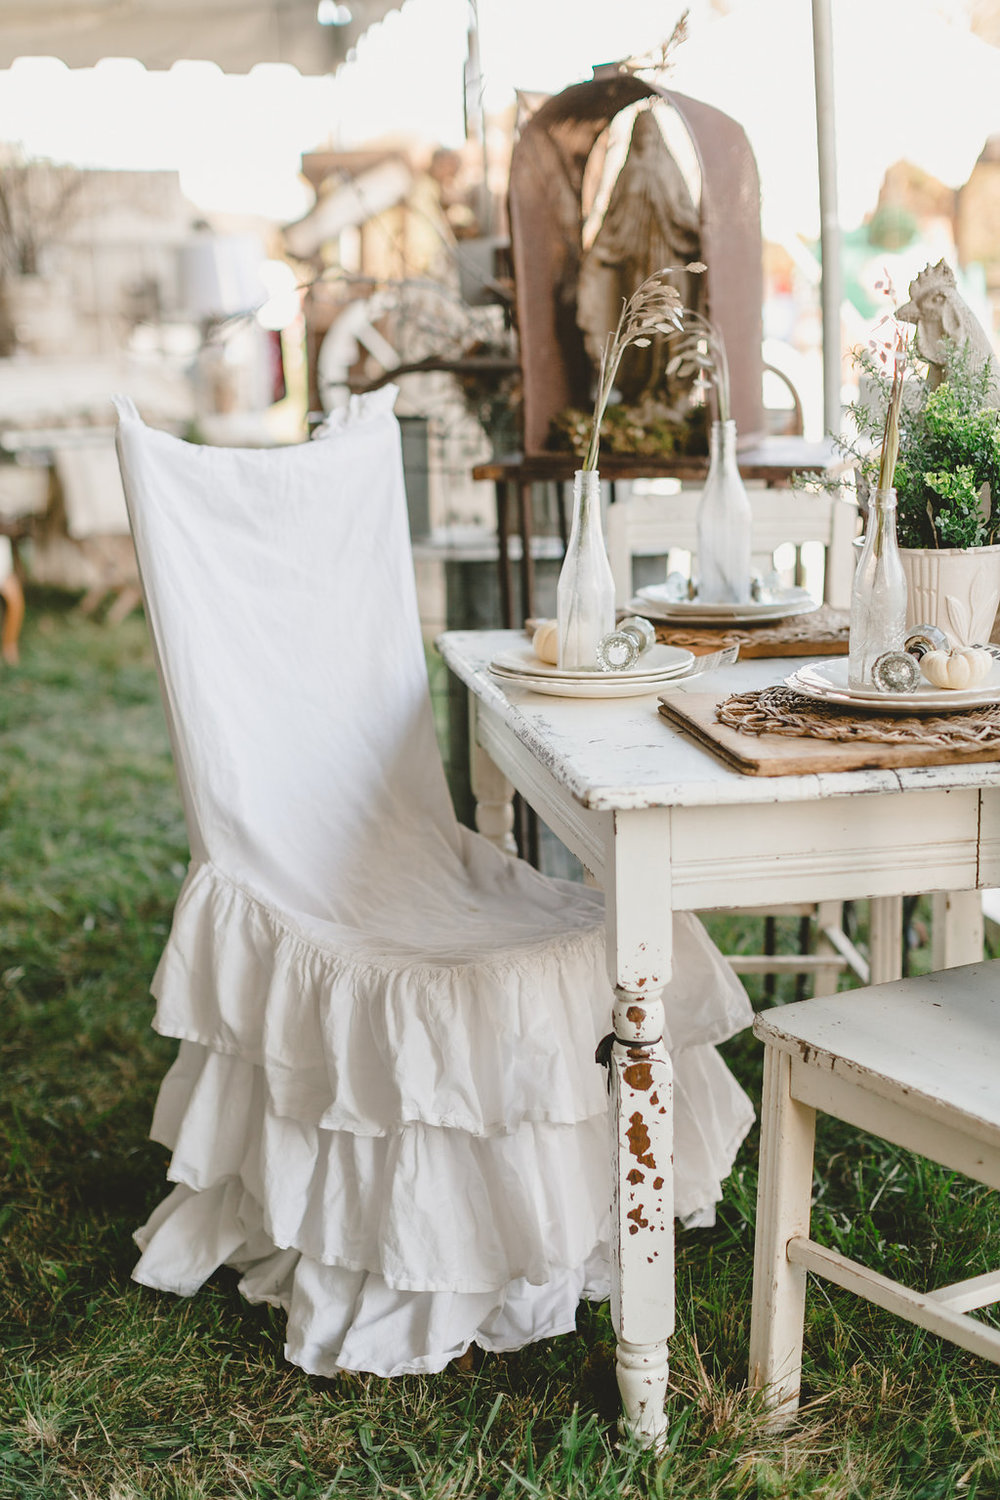 October Pop- Up Fair at City Farmhouse | Modern Farmhouse Style for Urban and Rural Living